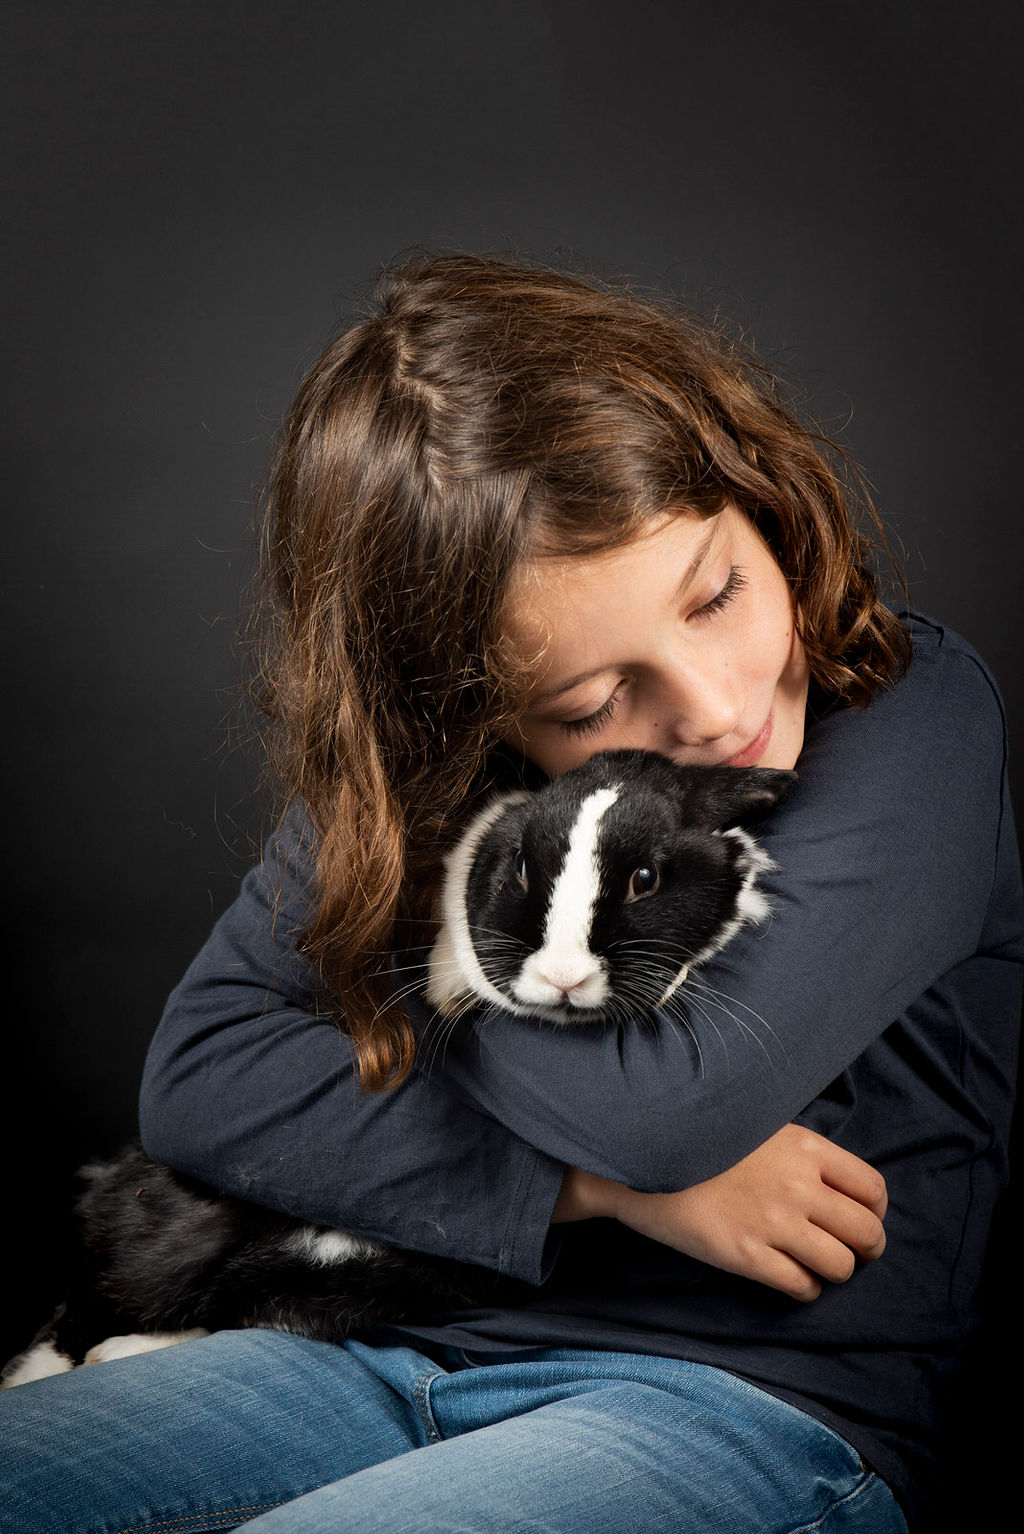 Photo enfant lapin - photographe animaliere bayonne